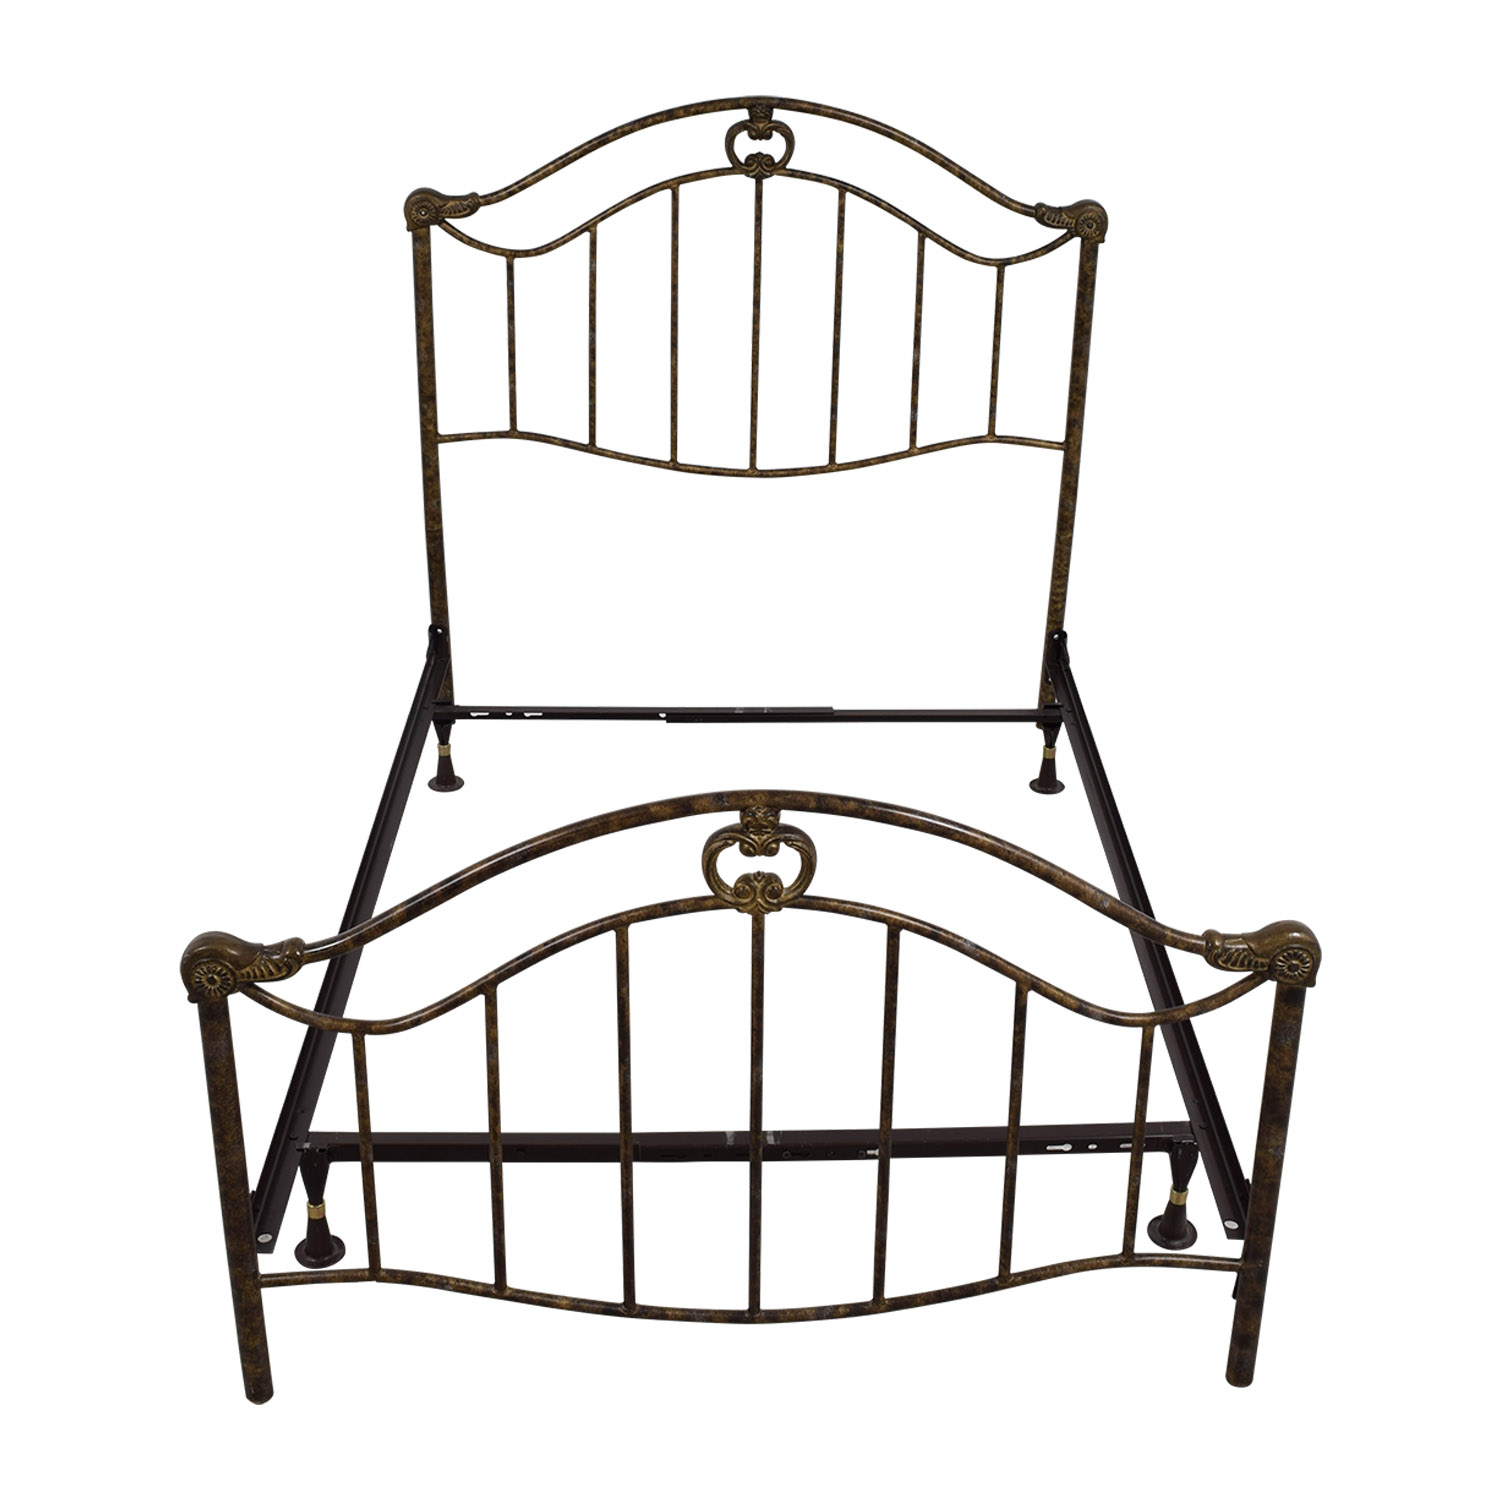 Full Bronze Metal Bed Frame for sale